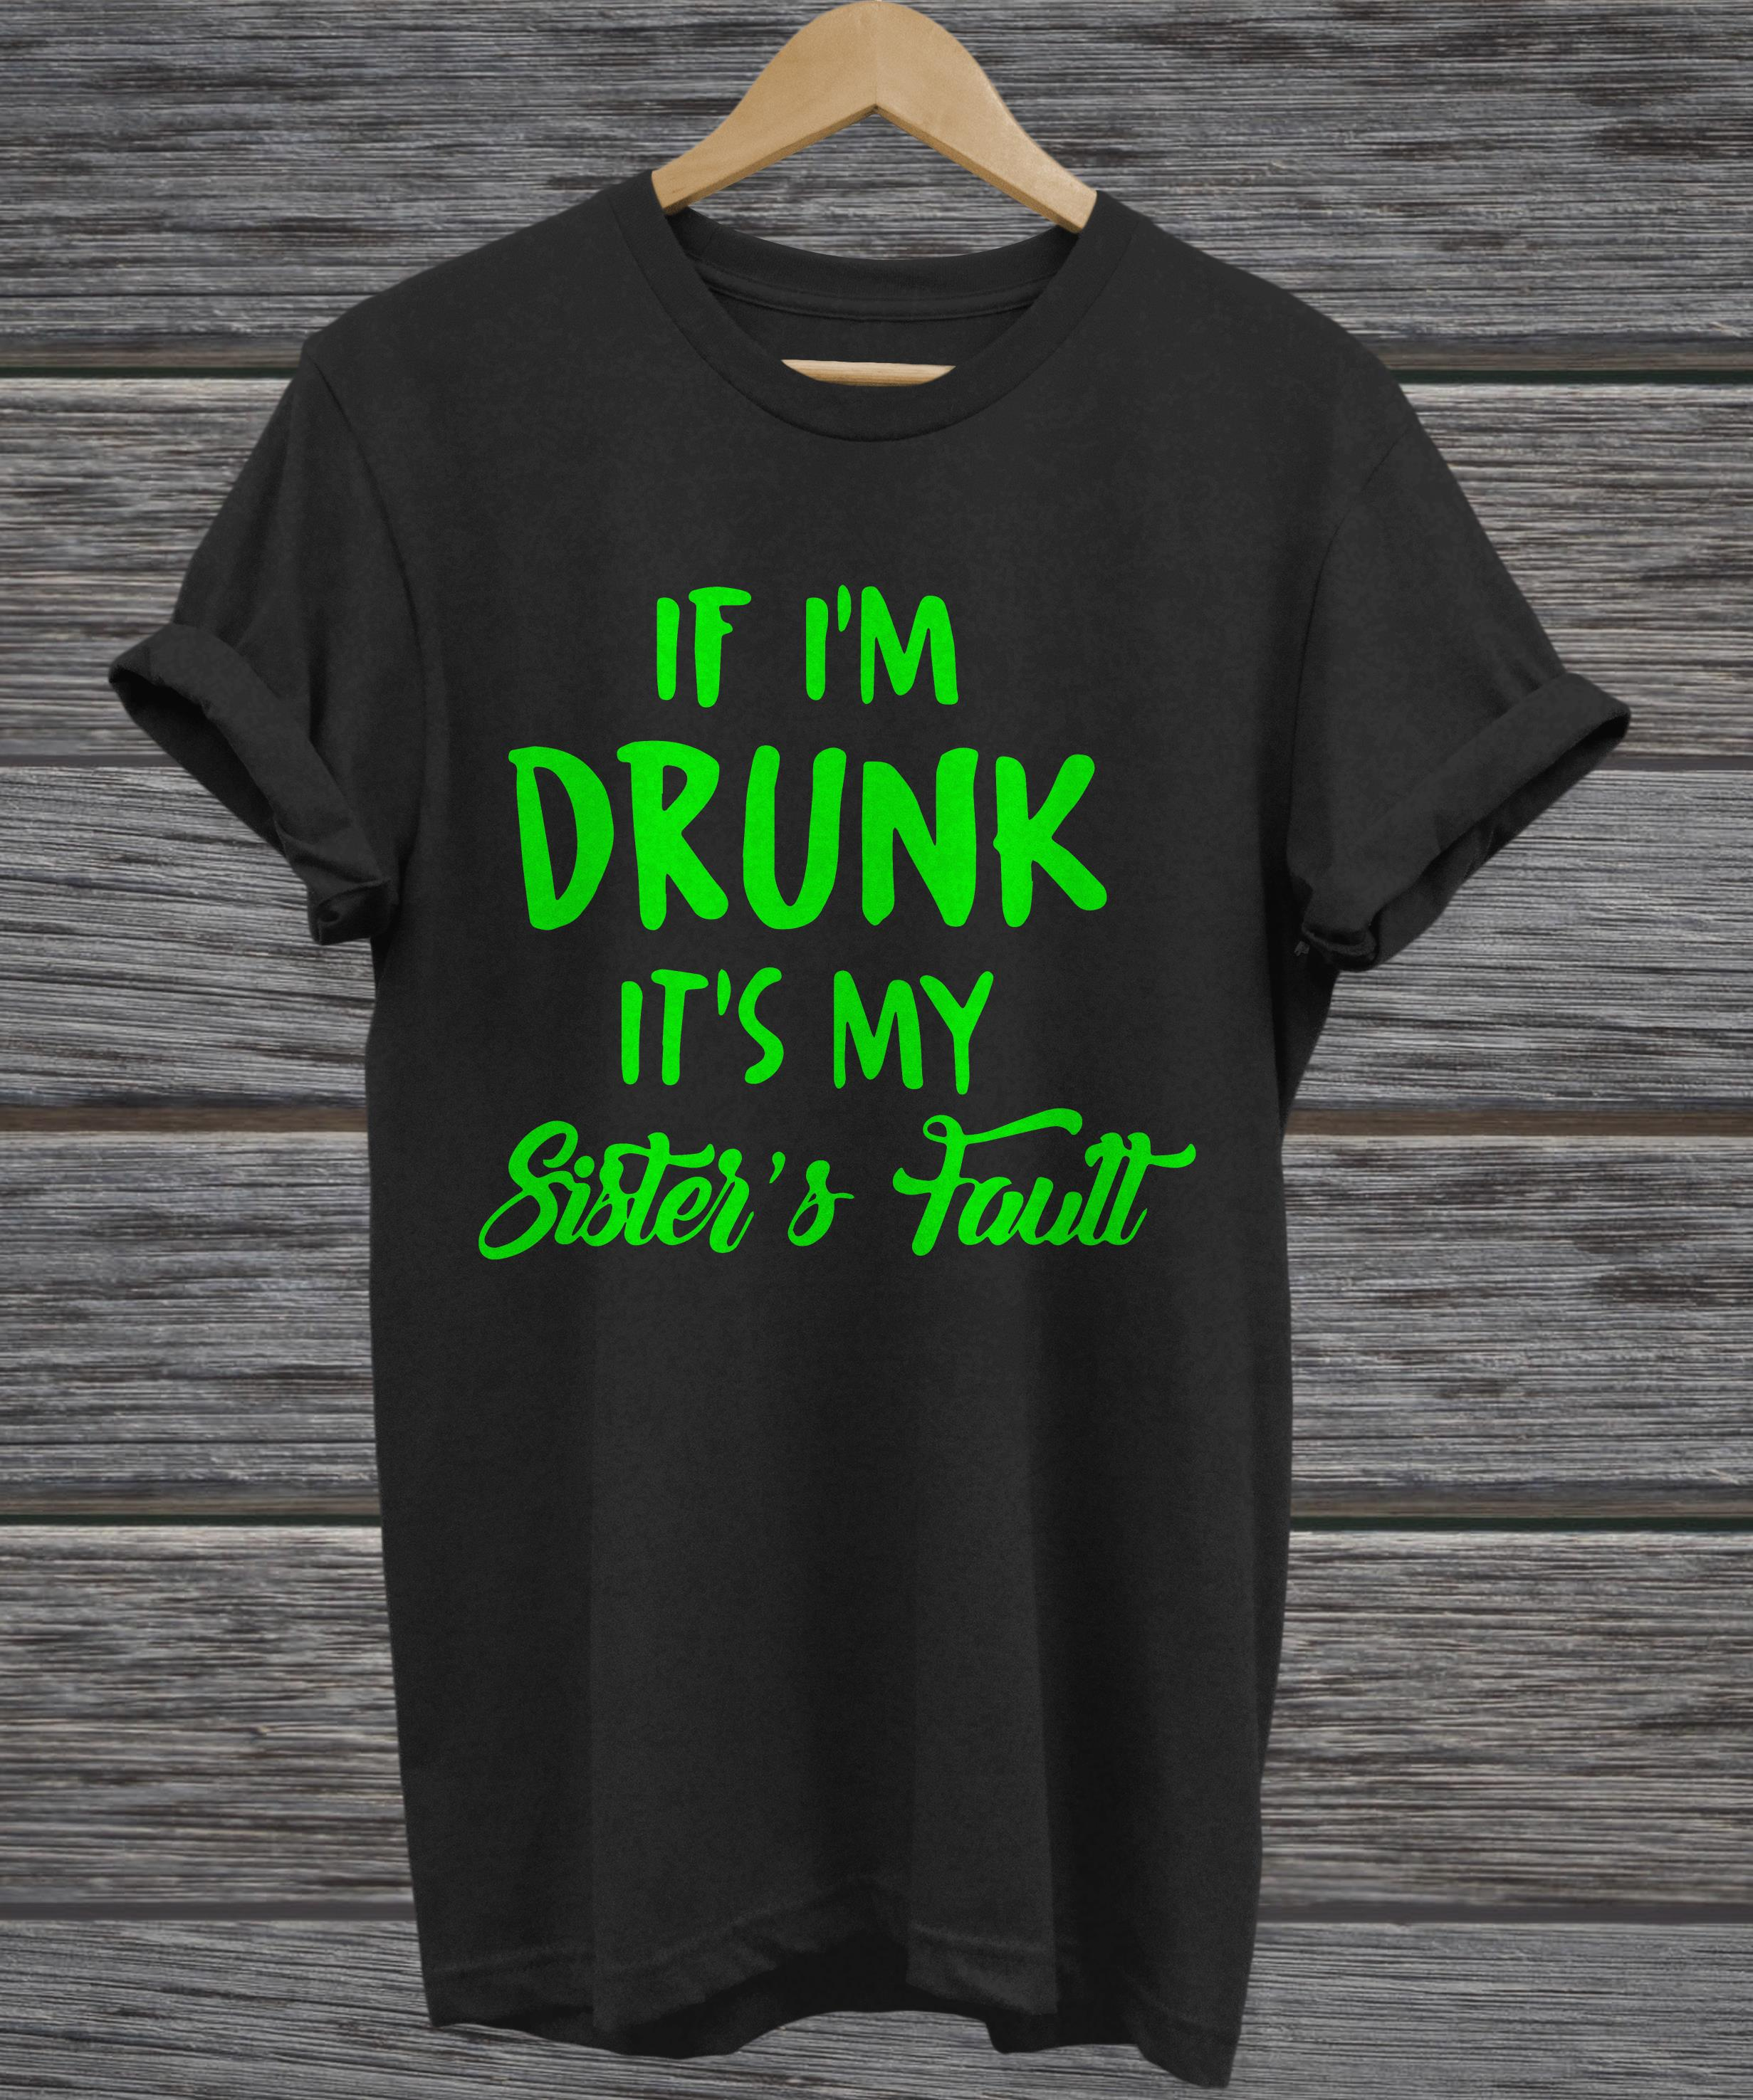 If I'm drunk it's my sister's fault v-neck